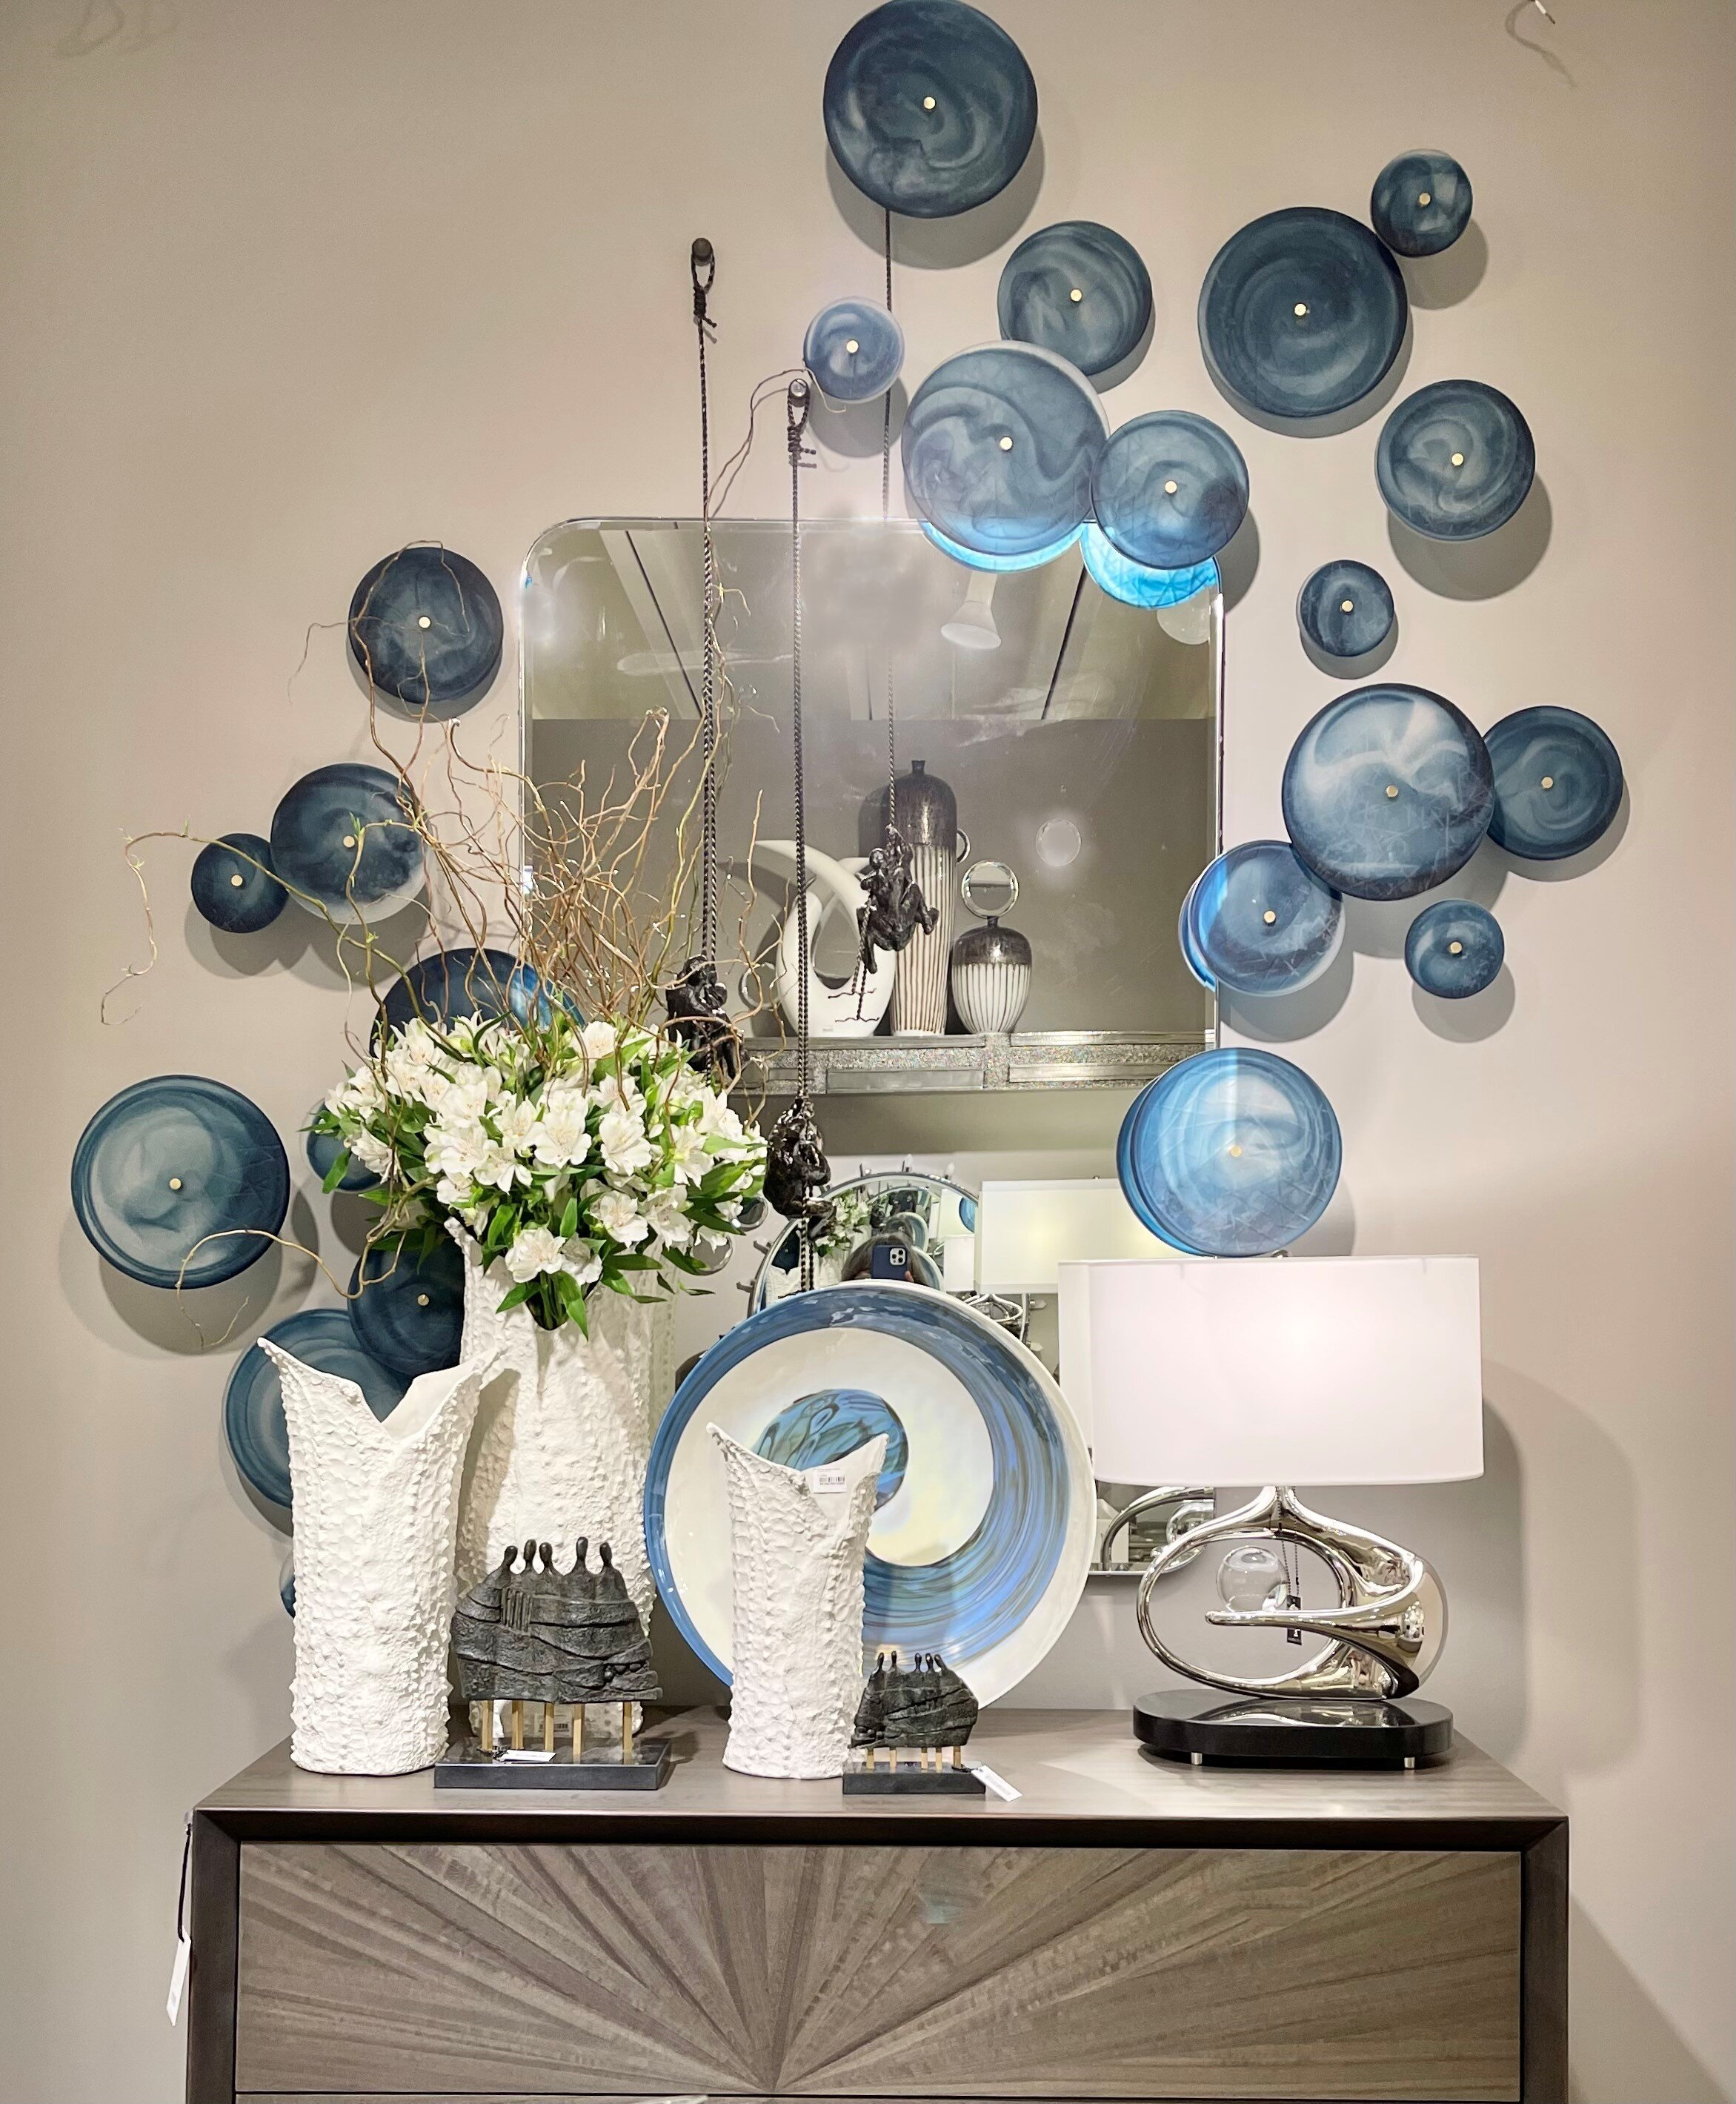 A Lesson In Wall Decor From Dallas Market Showrooms ...